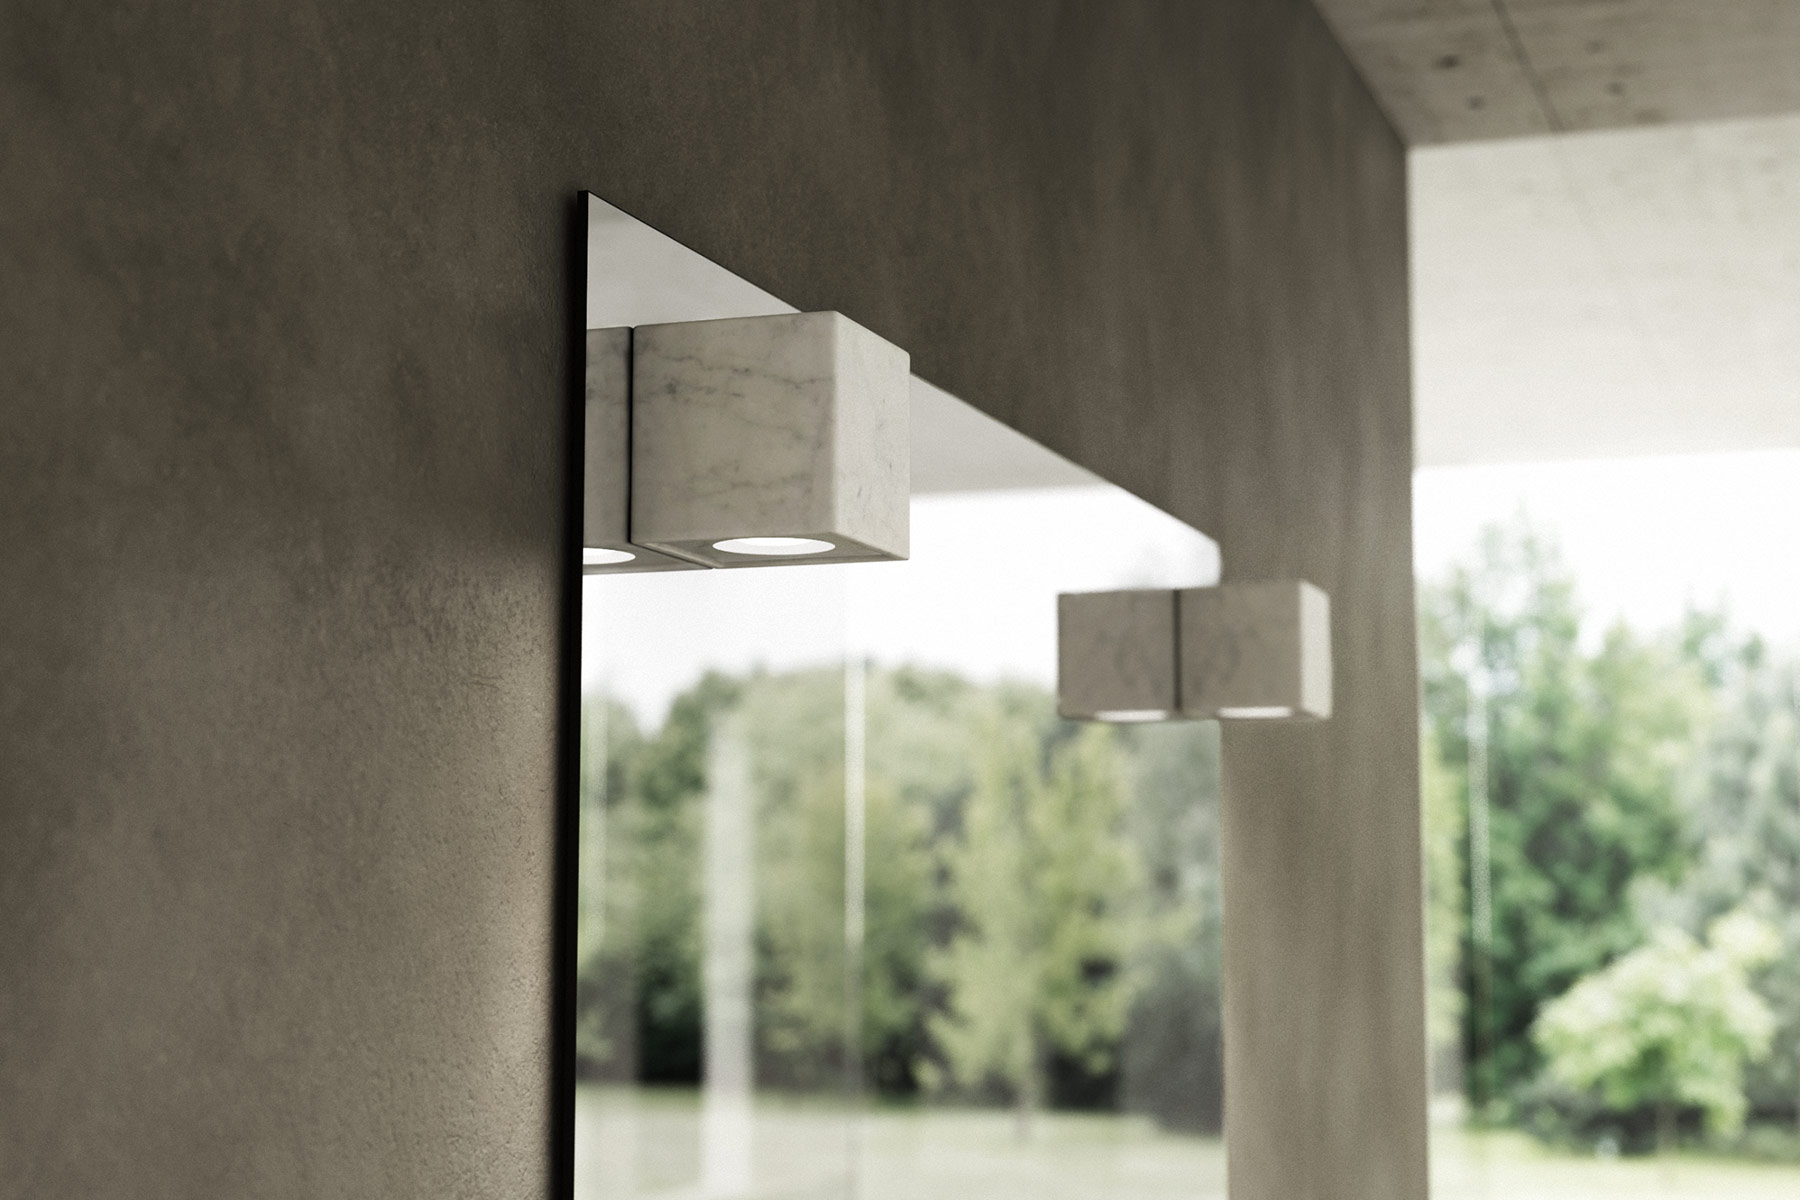 Transitional Quadro Wall Mounted Mirror